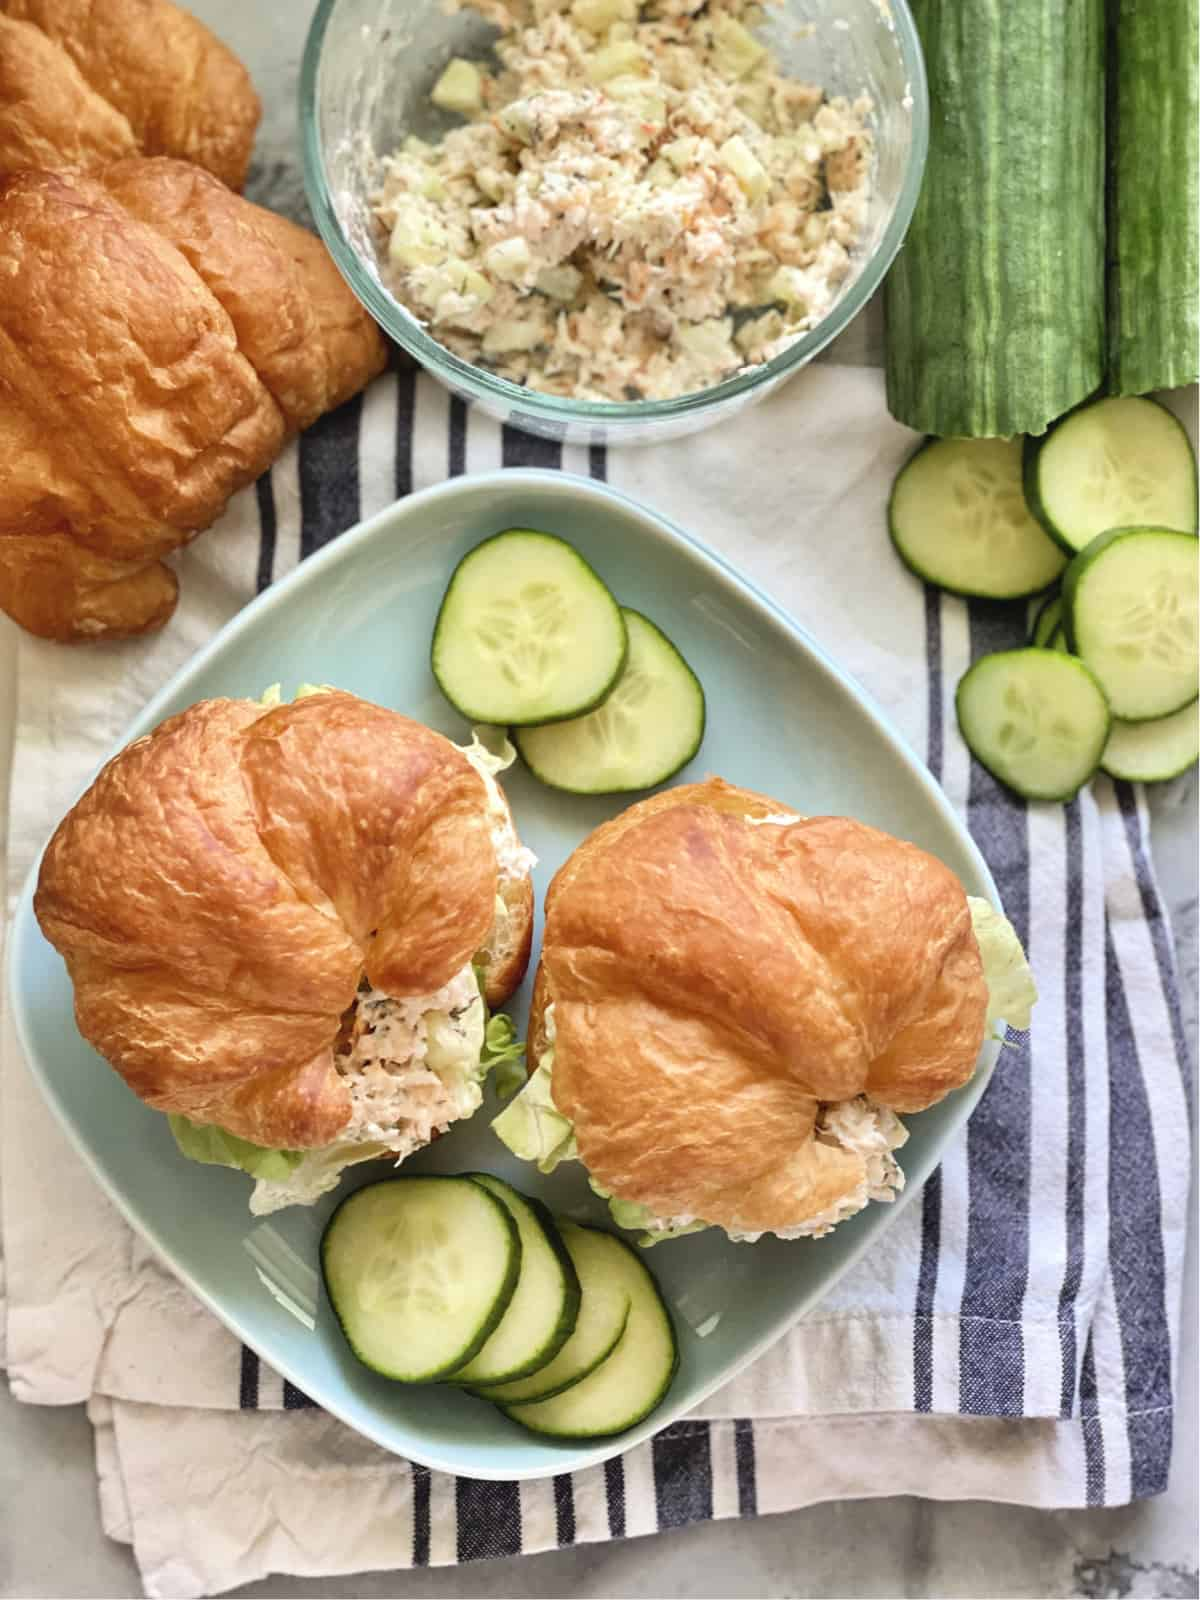 Top view of a square blue plate with croissants filled with shrimp salad and cucumber slices.